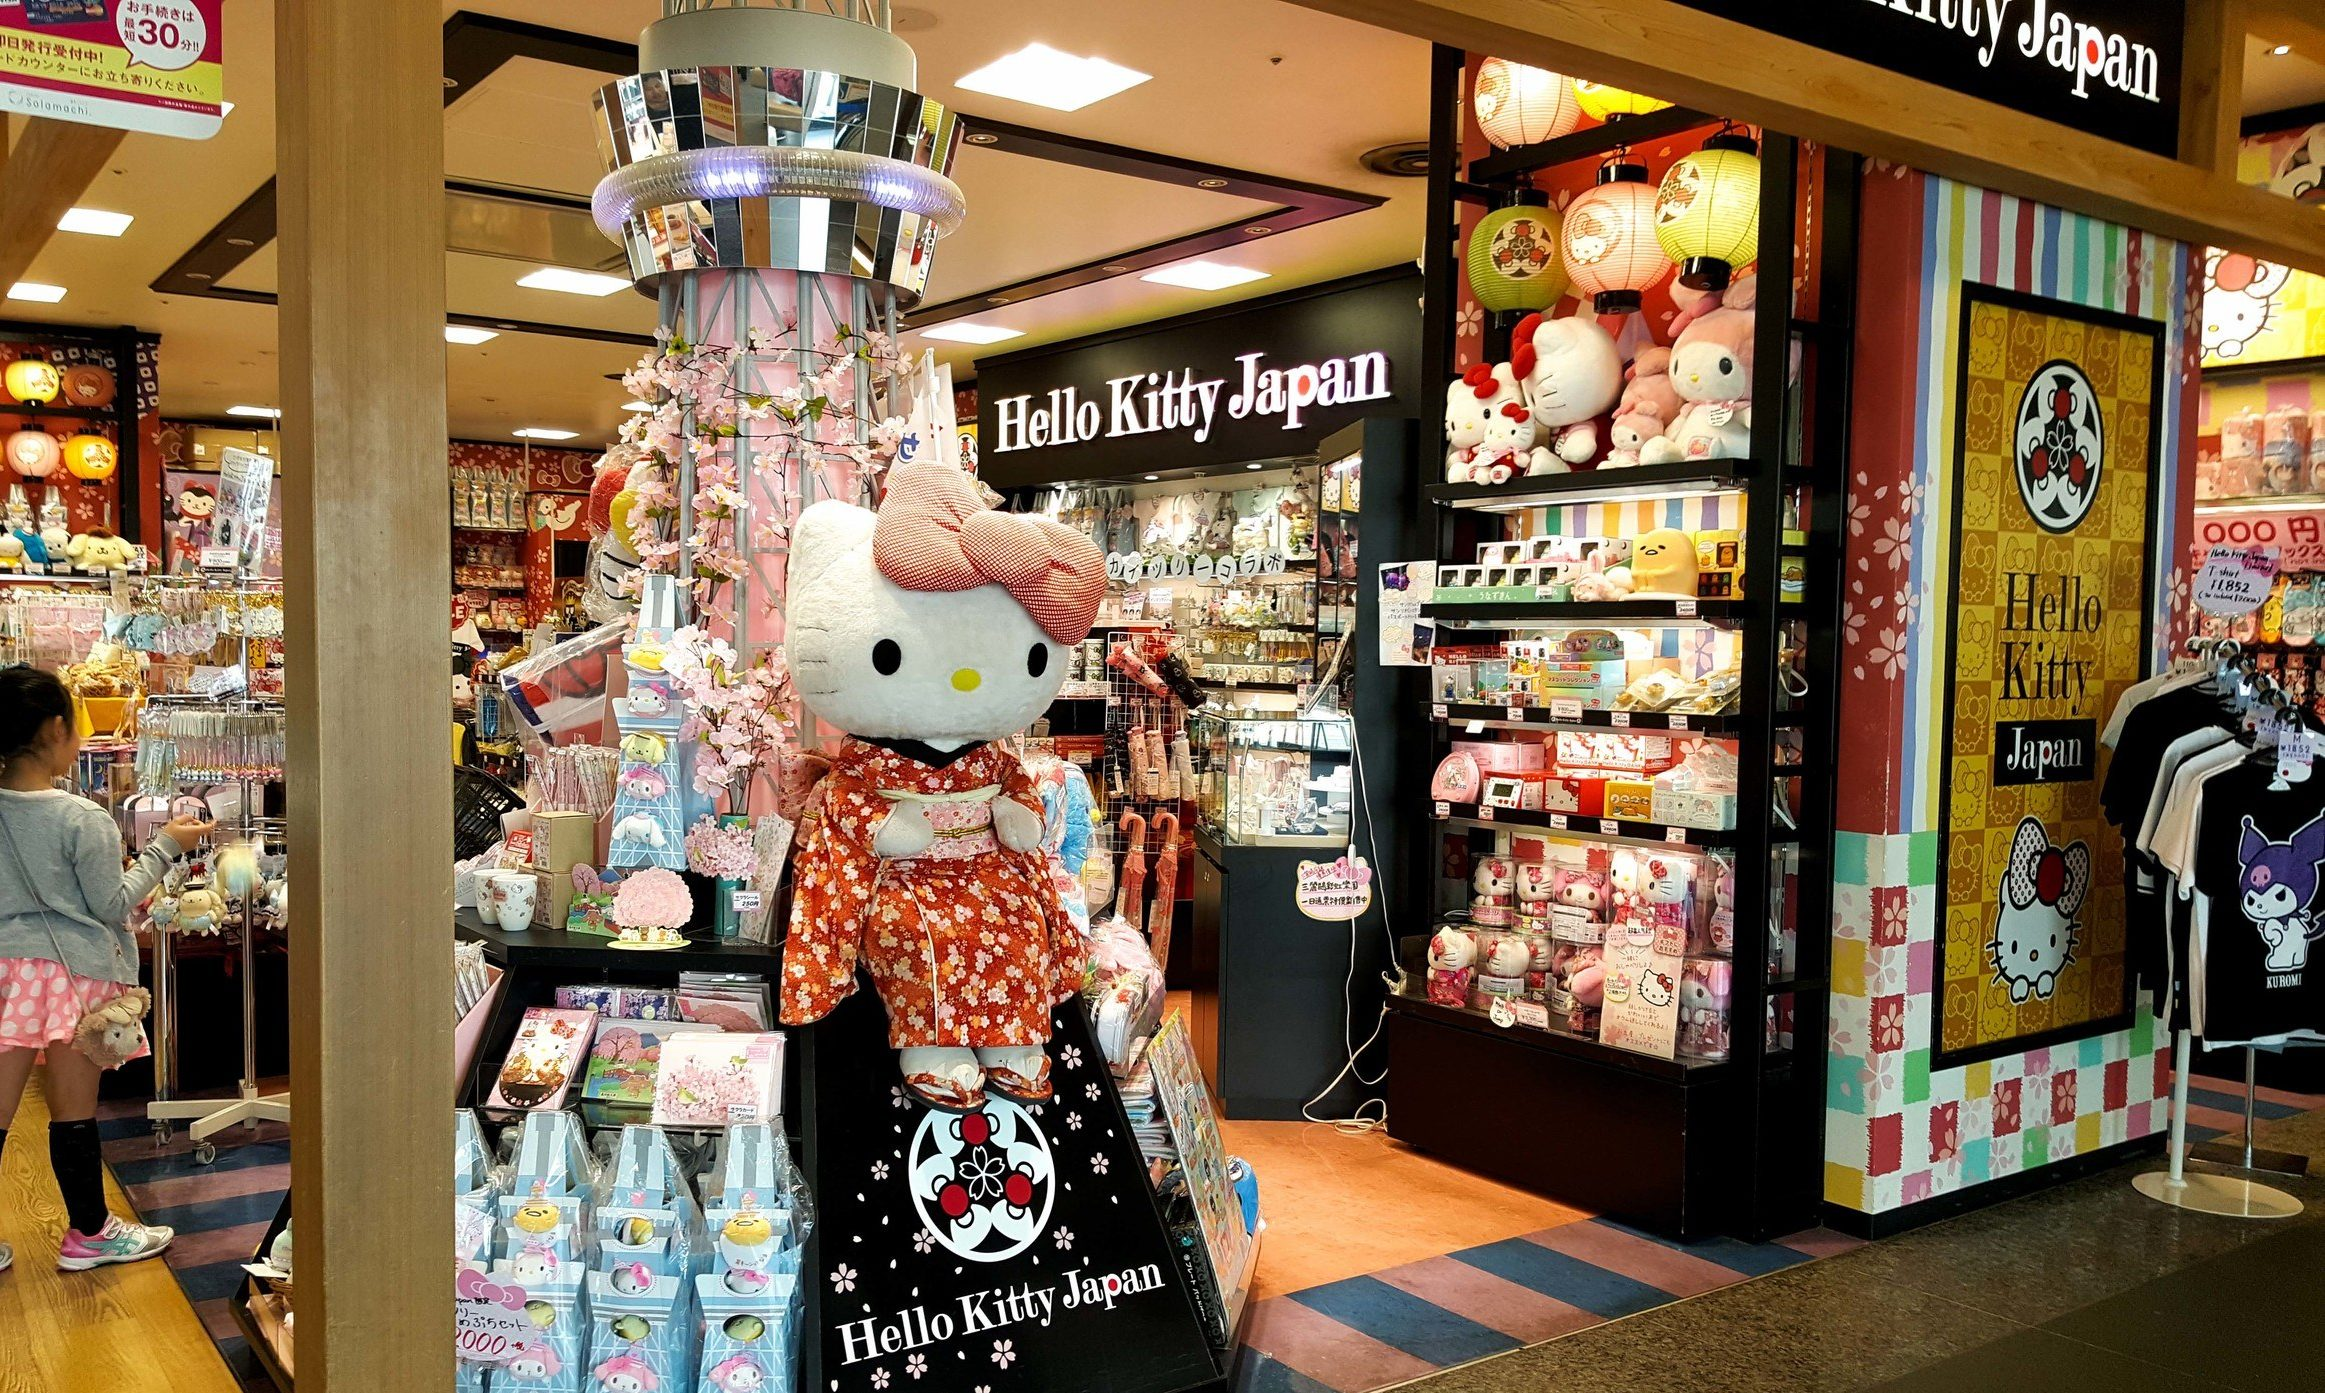 10 Things to Buy in Japan for Pasalubong – The Best Souvenirs from Japan